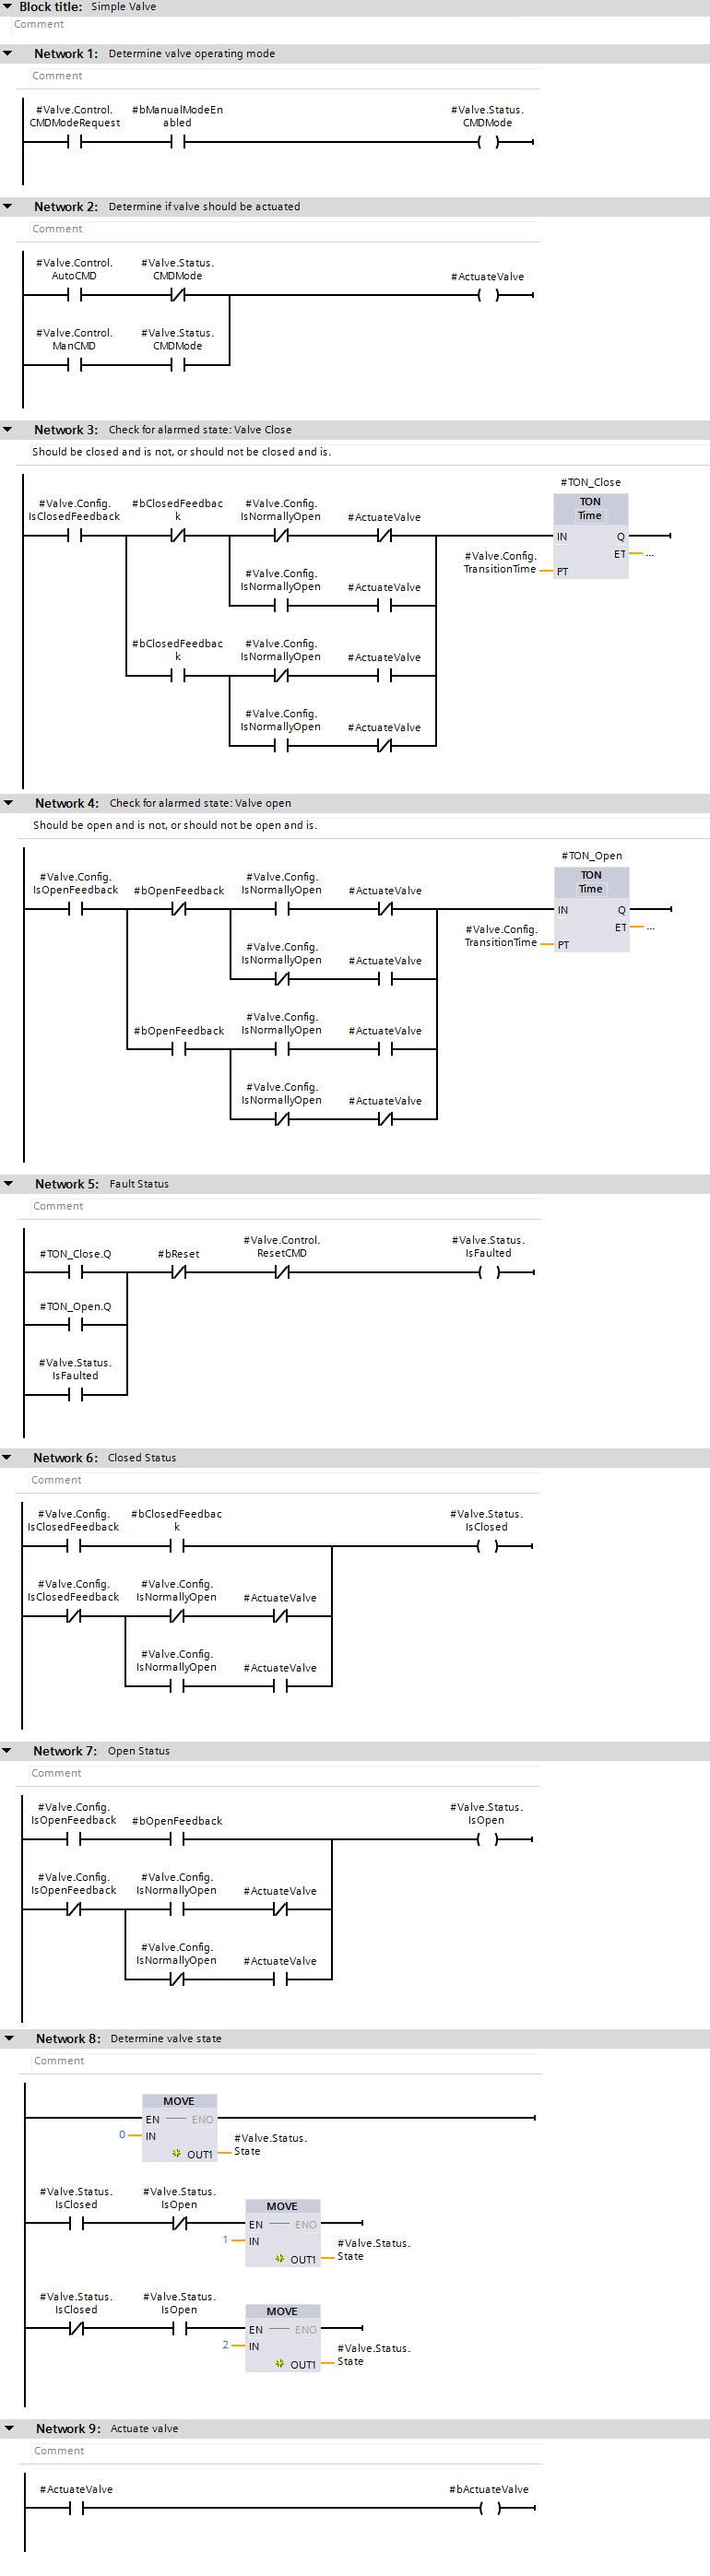 Linking PLC UDT Tags to HMI Faceplates and Pop-ups in TIA Portal V13